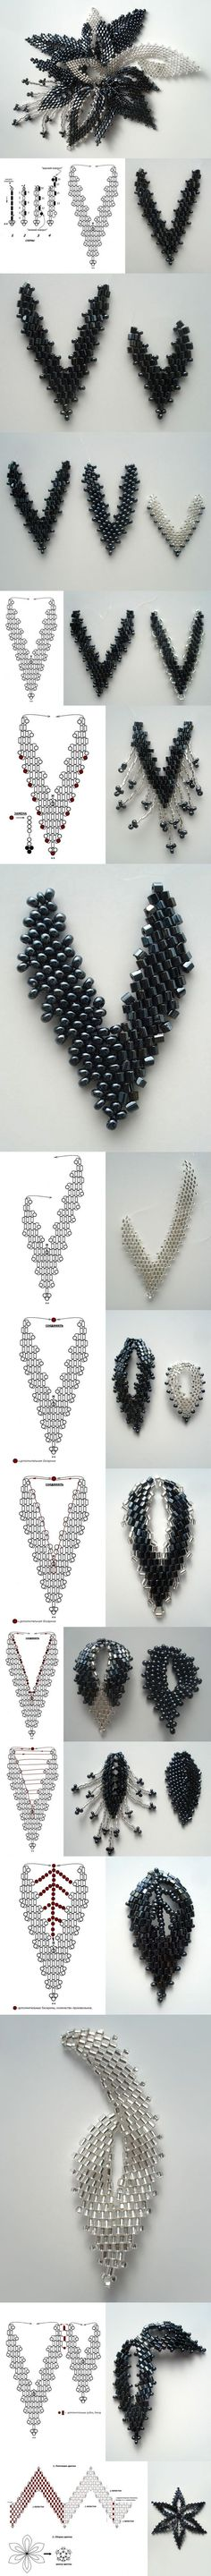 DIY Cool Bead Flower Pendant | www.FabArtDIY.com LIKE Us on Facebook == https://www.facebook.com/FabArtDIY